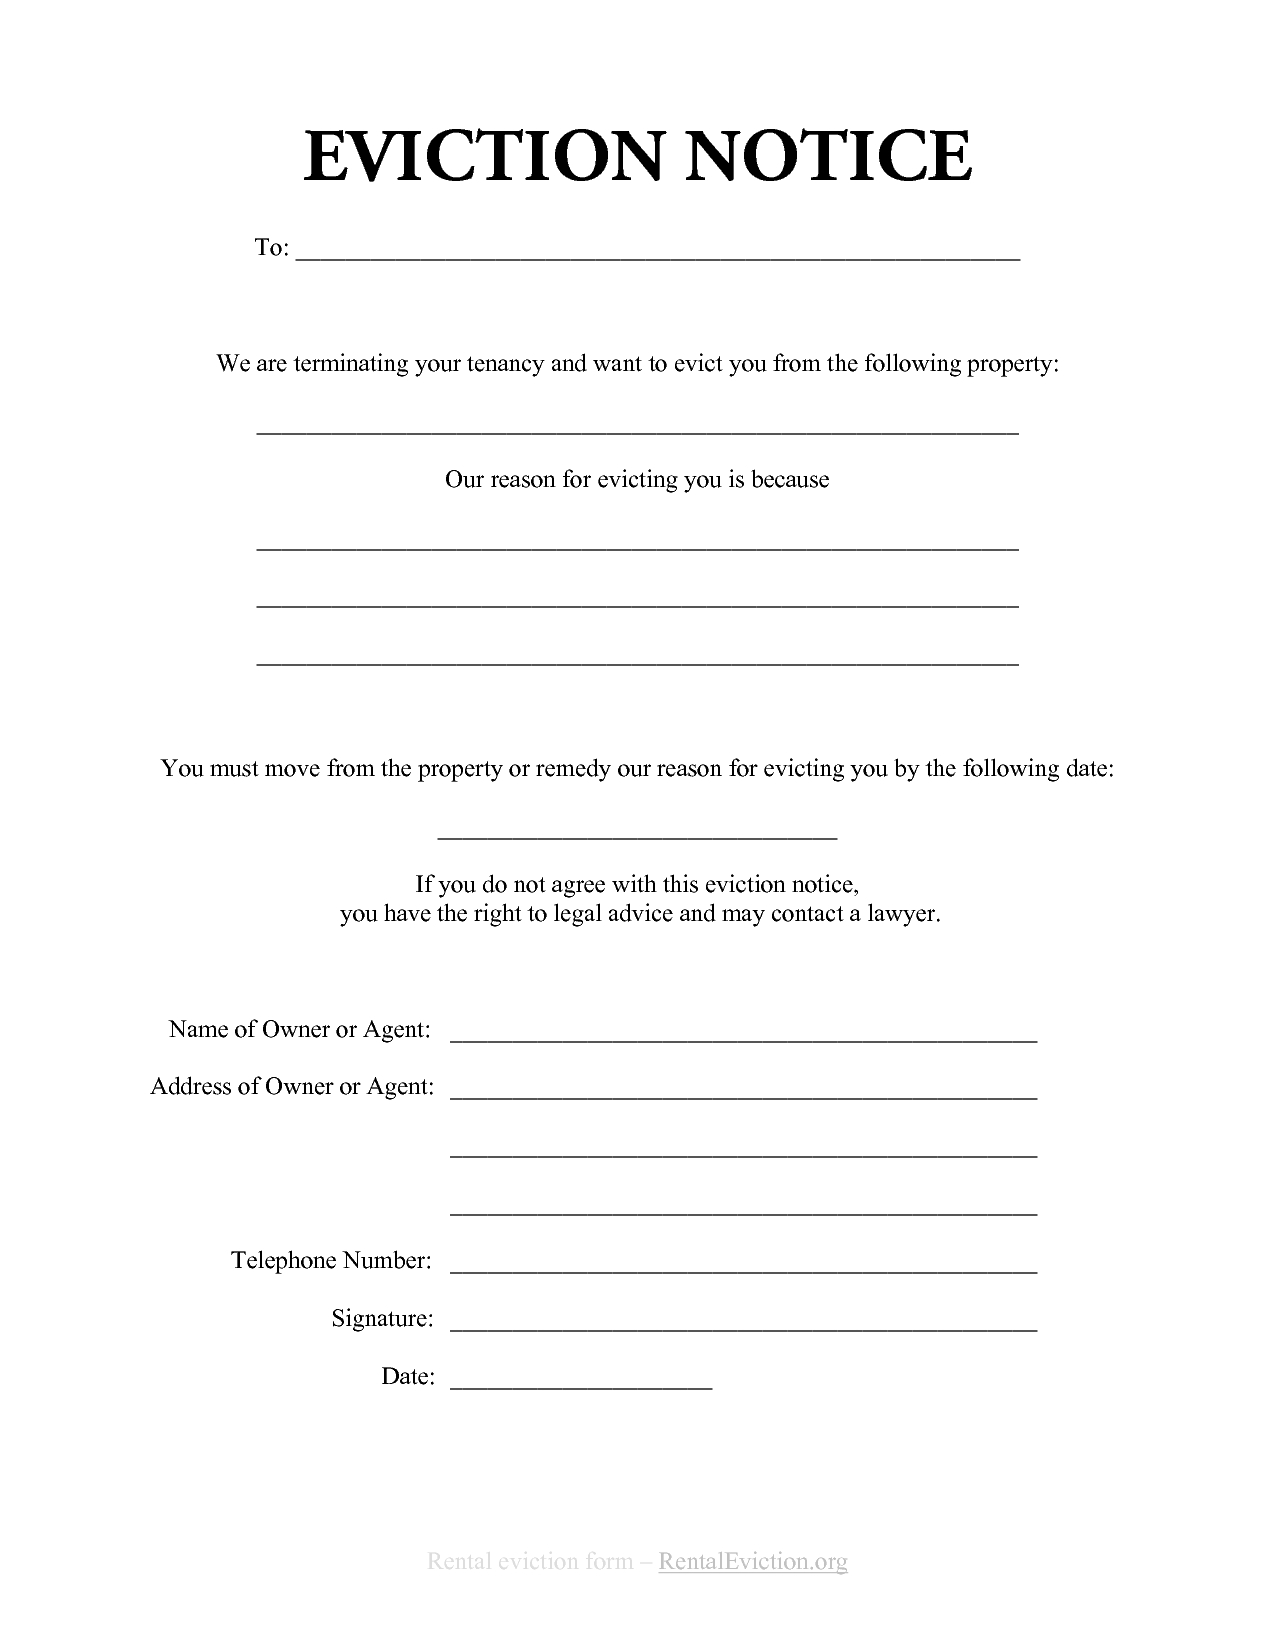 eviction warning letter template example-Free Print Out Eviction Notices 14-f